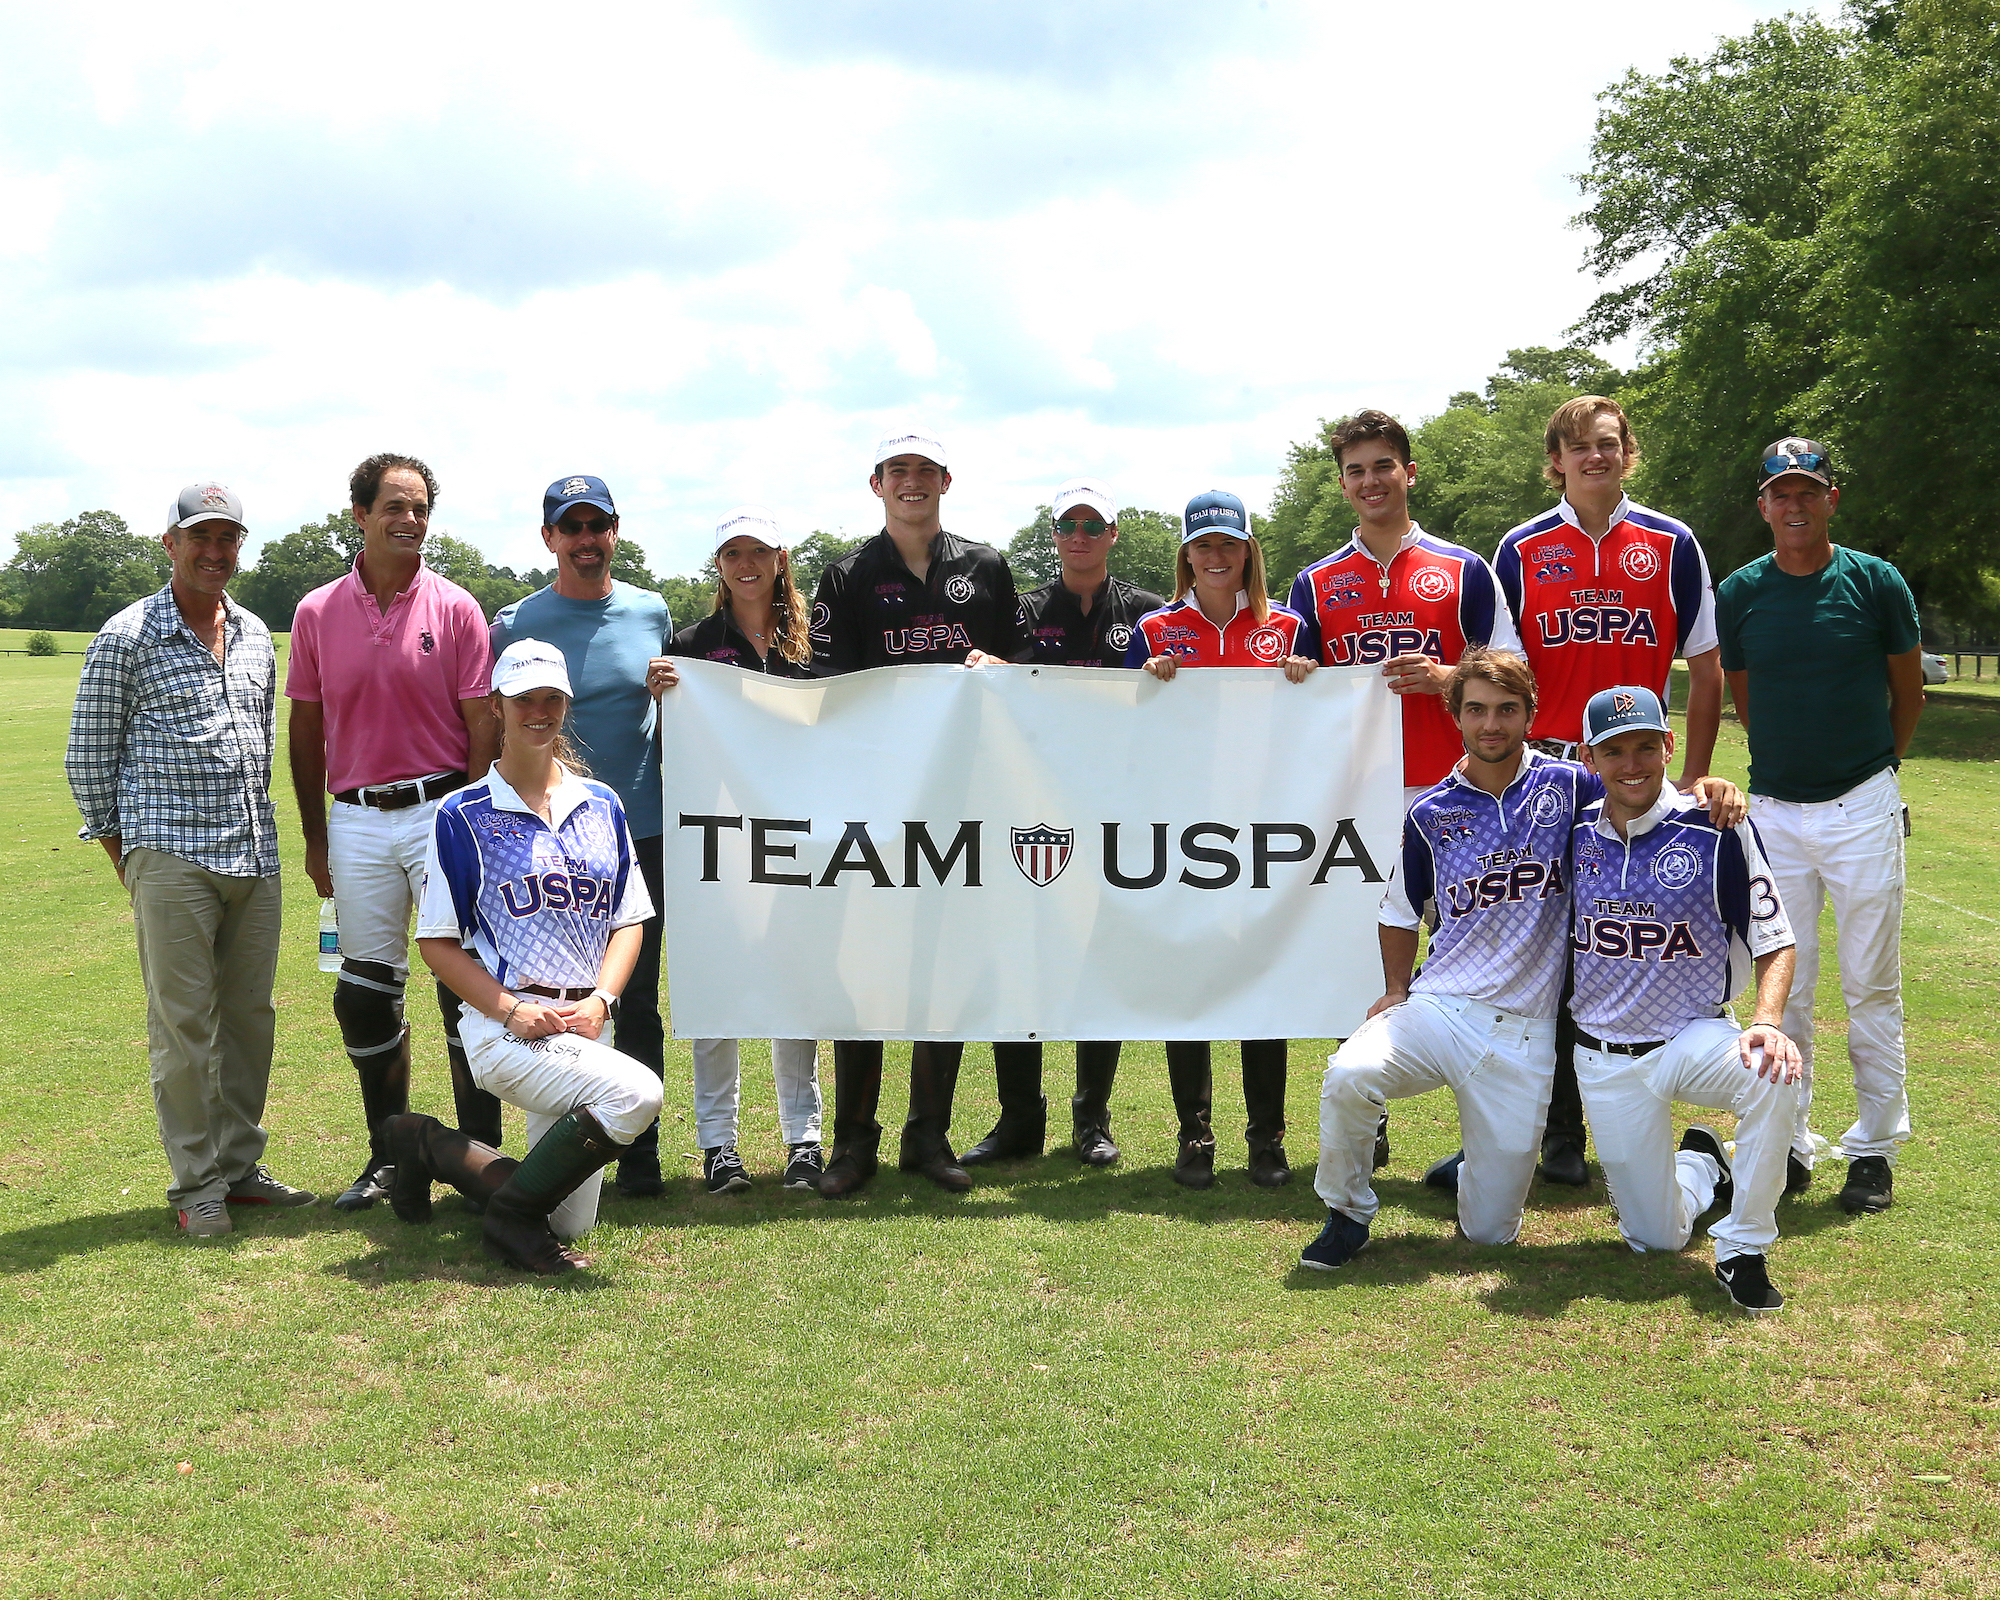 Newest Team USPA members with Adam Snow, Carlucho Arellano, Bob Puetz and Owen Rinehart.